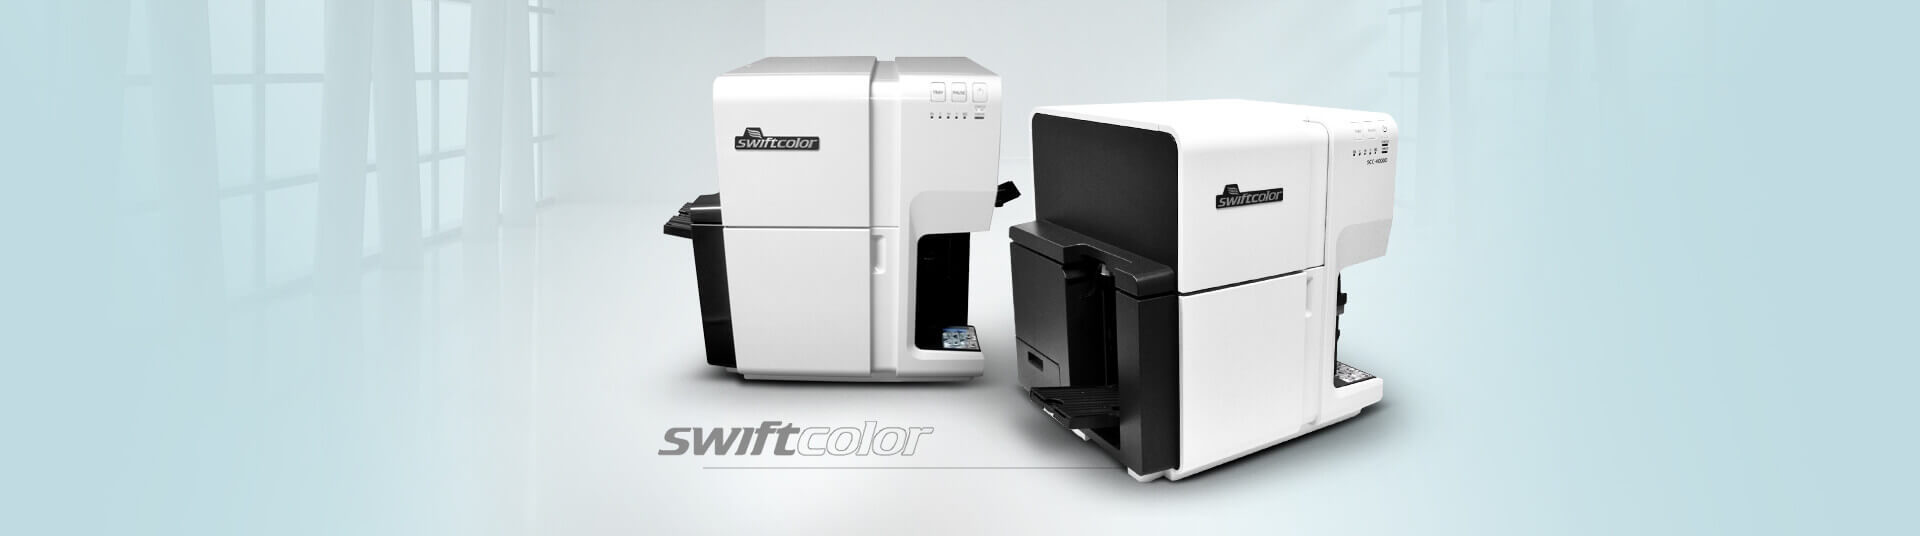 SwiftColor Photo ID Printers